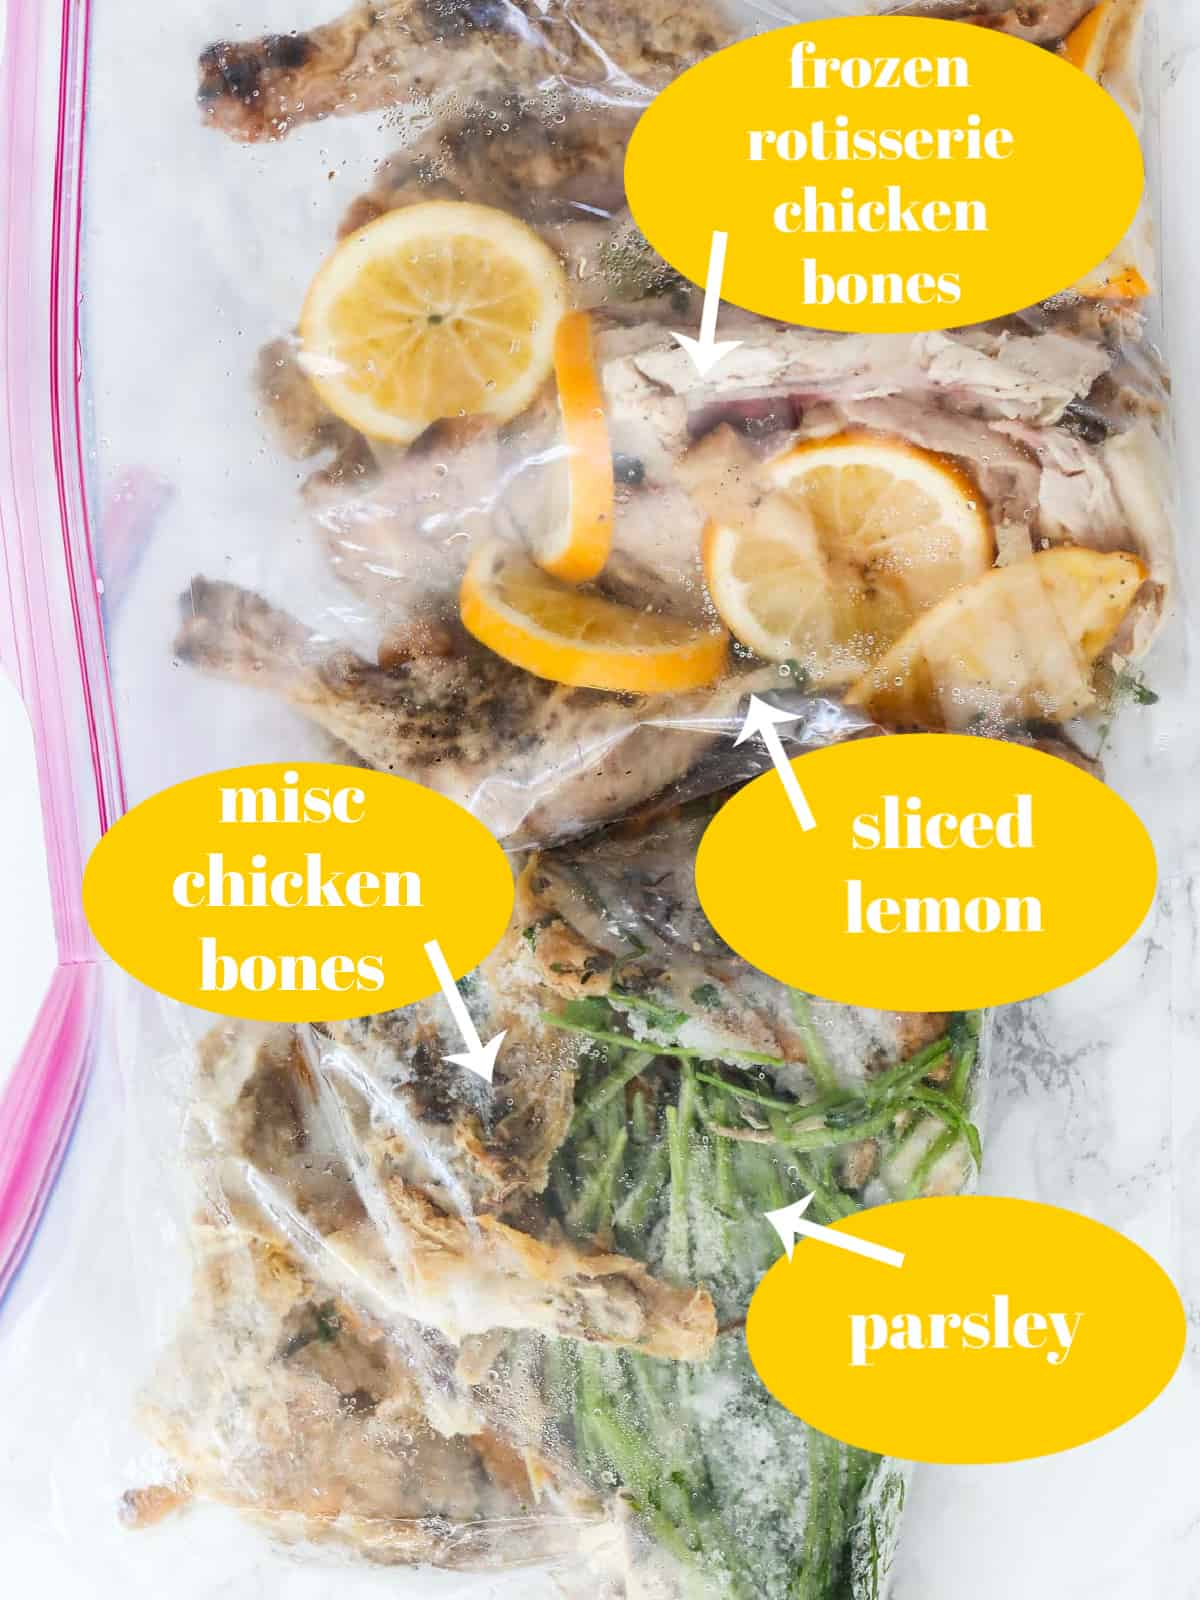 Large freezer bags filled with frozen chicken bones, lemons, and parsley to make chicken stock.